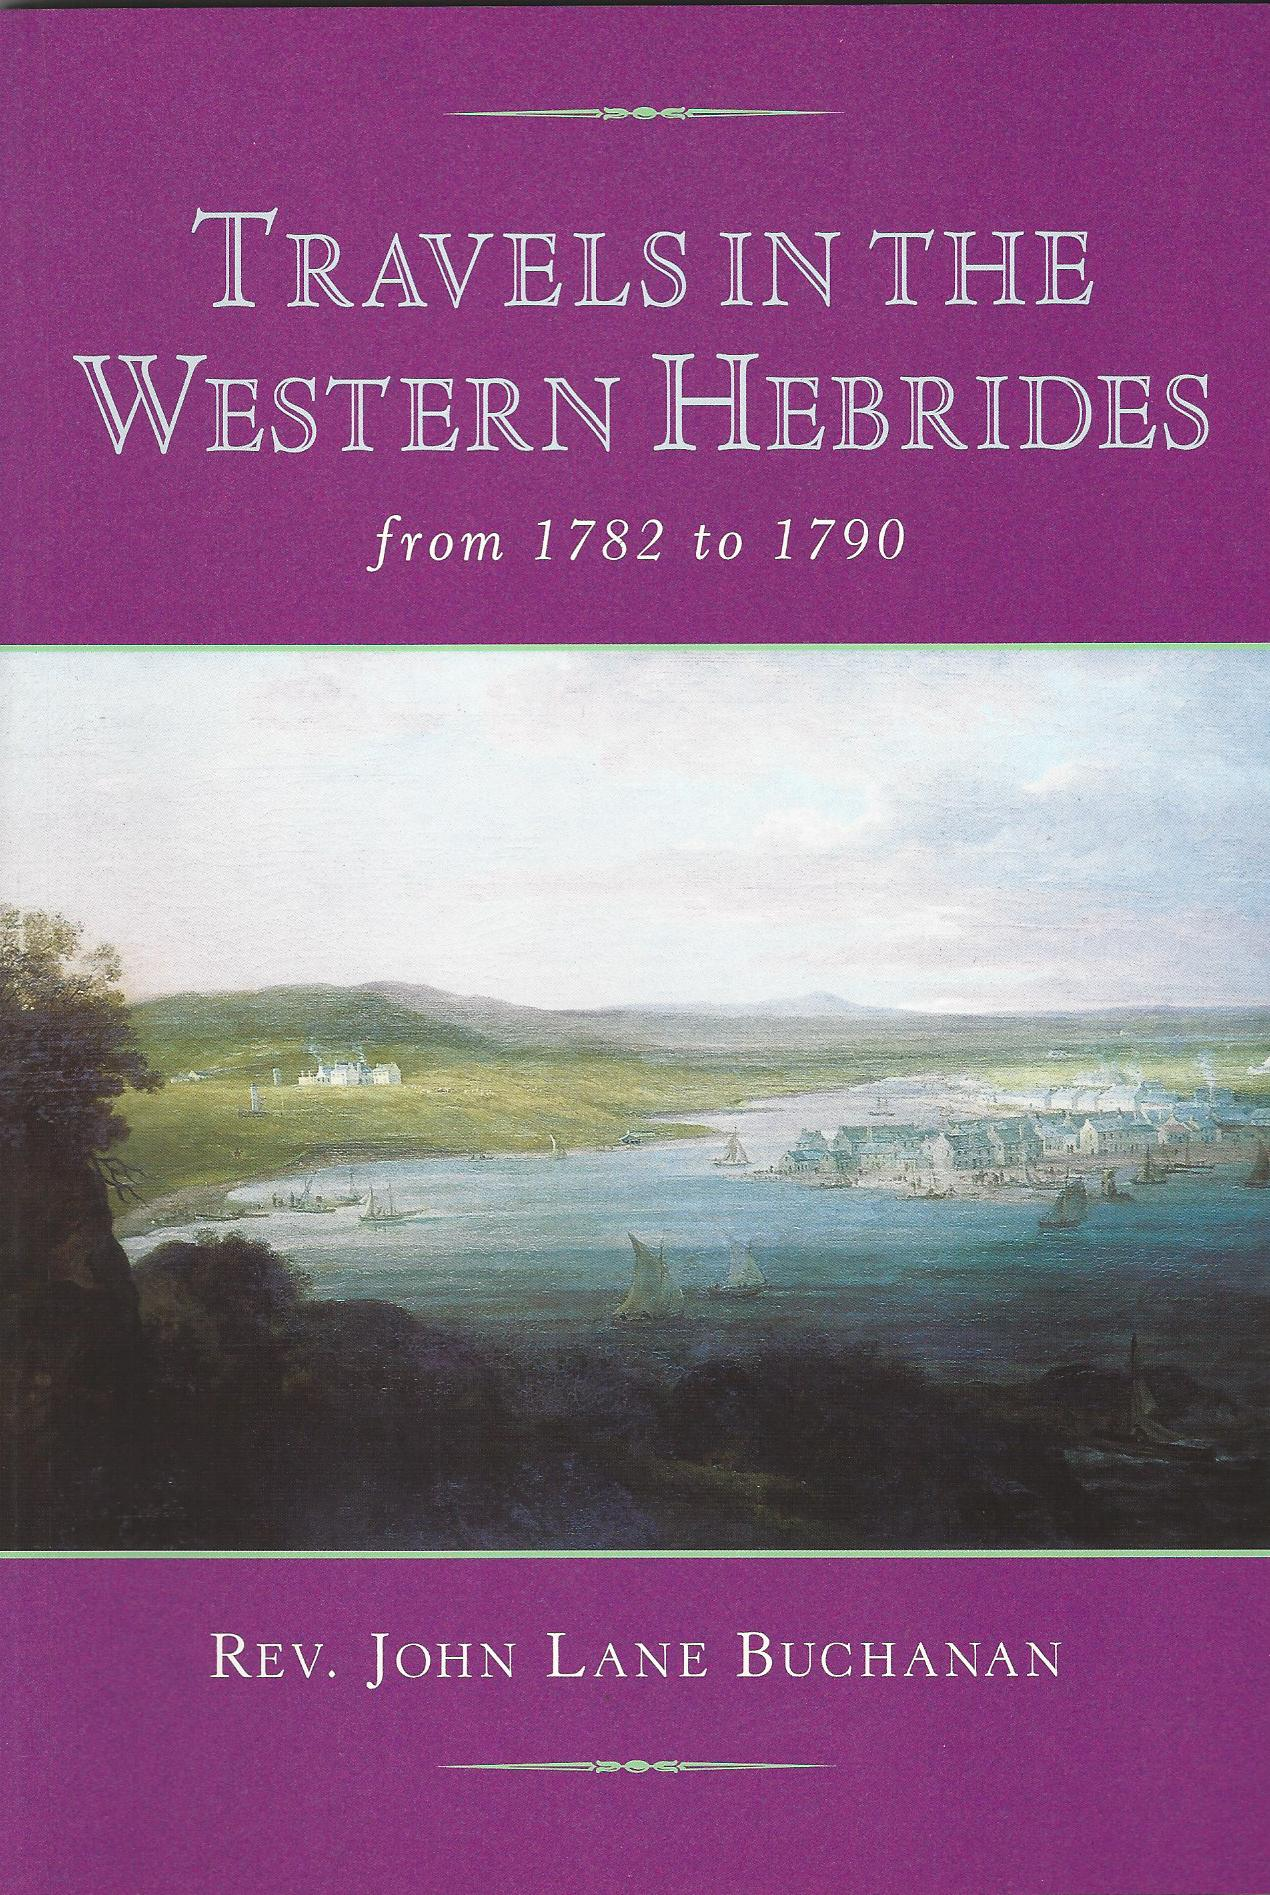 Image for Travels in the Western Isles from 1782 to 1790